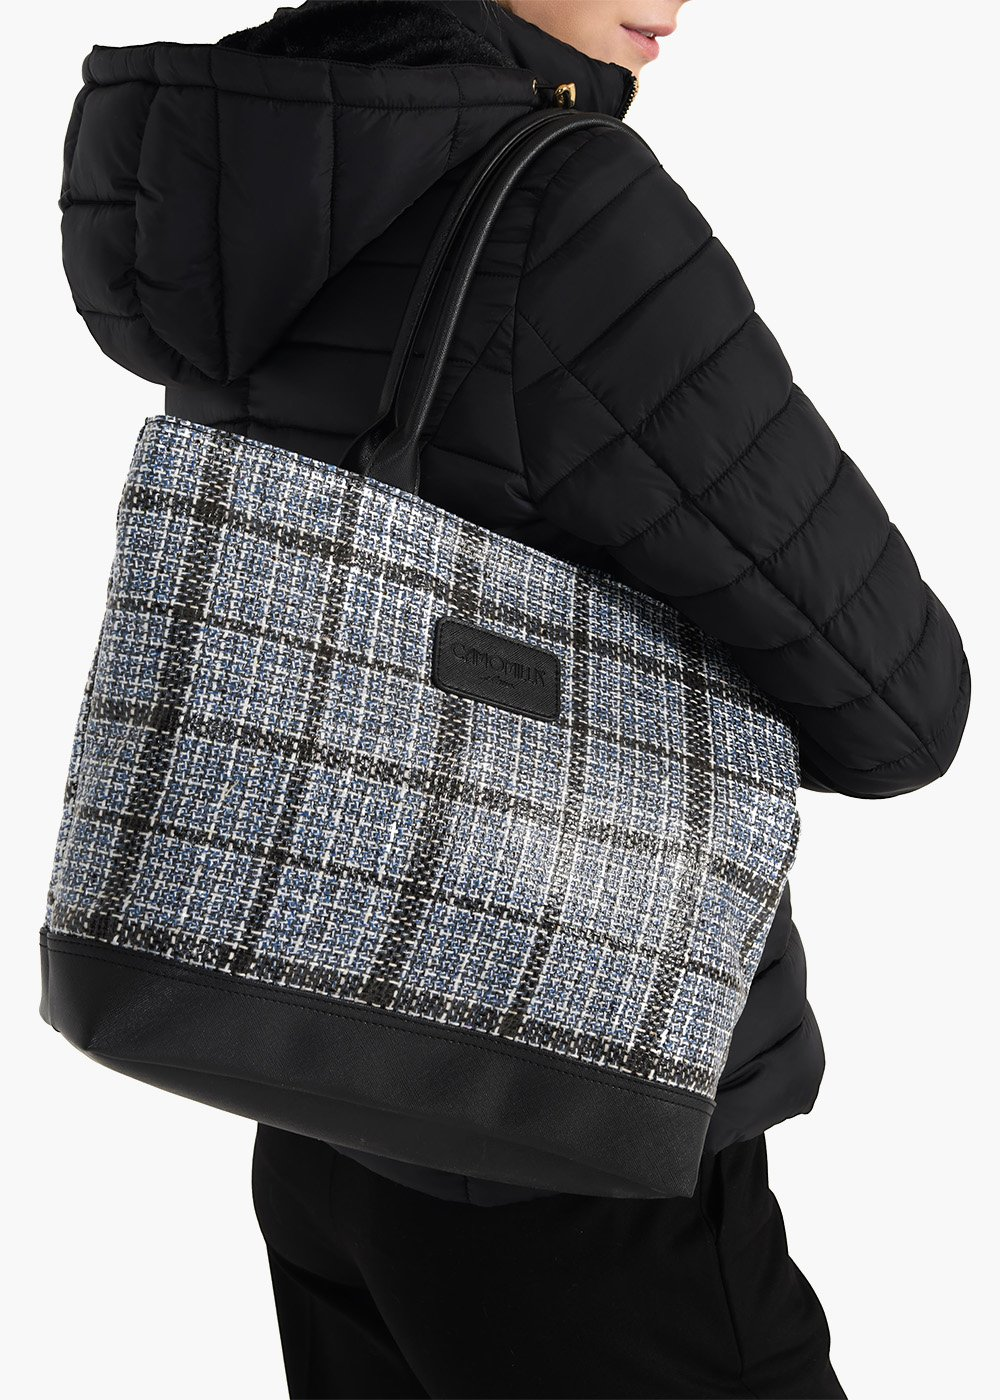 Trend Tartan shopping bag in tartan fabric with double handles - Avion / Black Fantasia - Woman